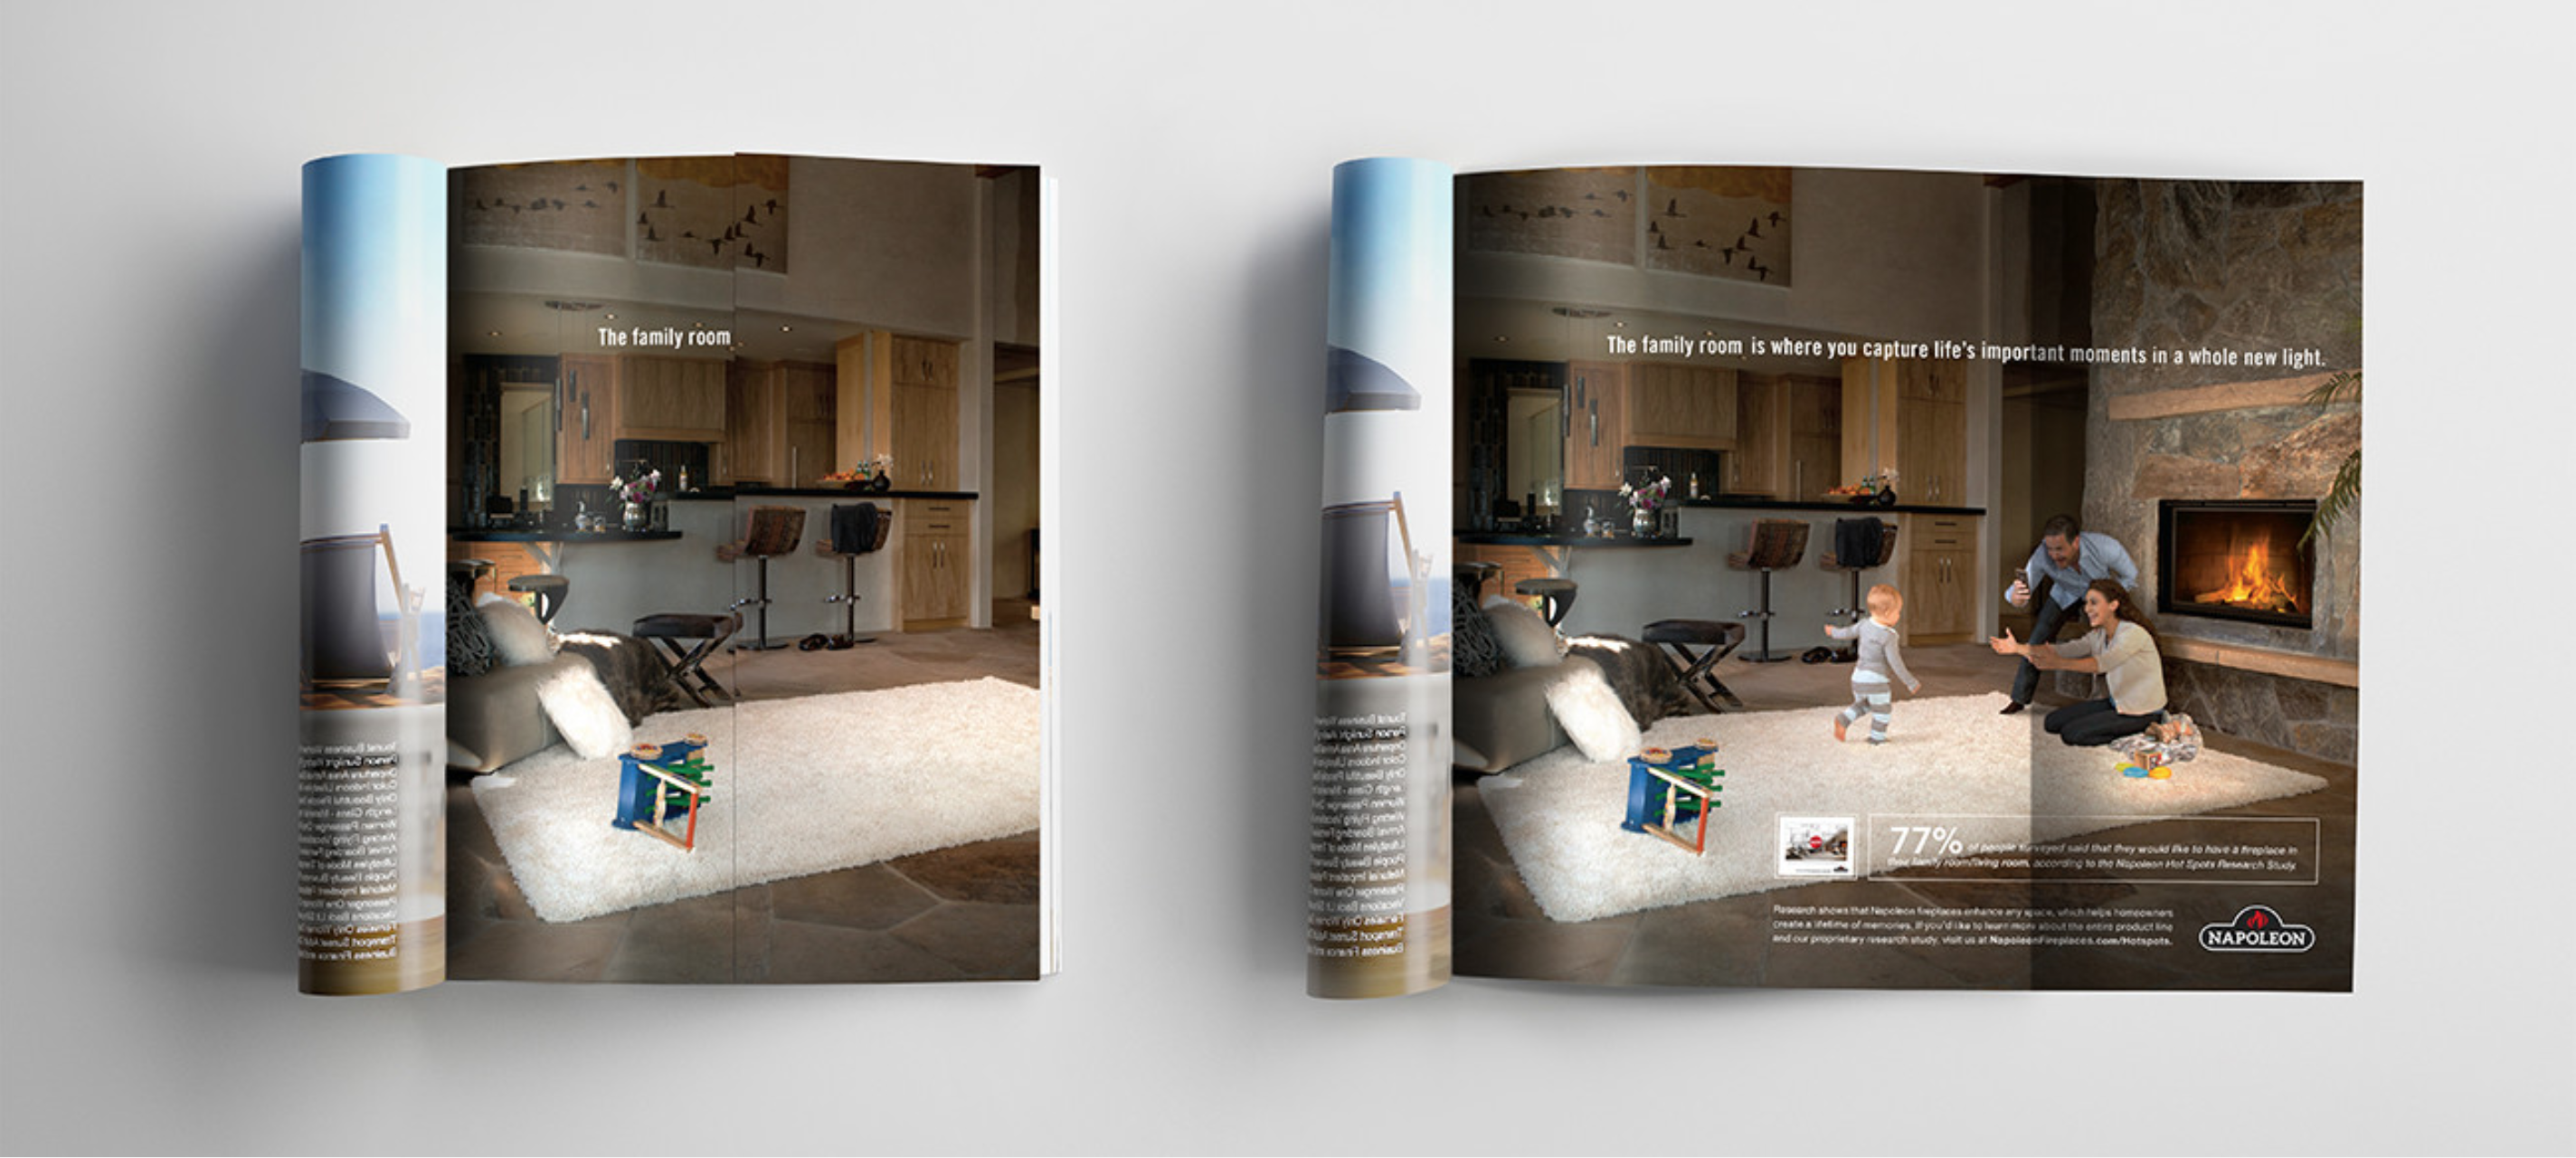 Napoleon fireplaces Hot Spots campaign magazine placements and microsite.